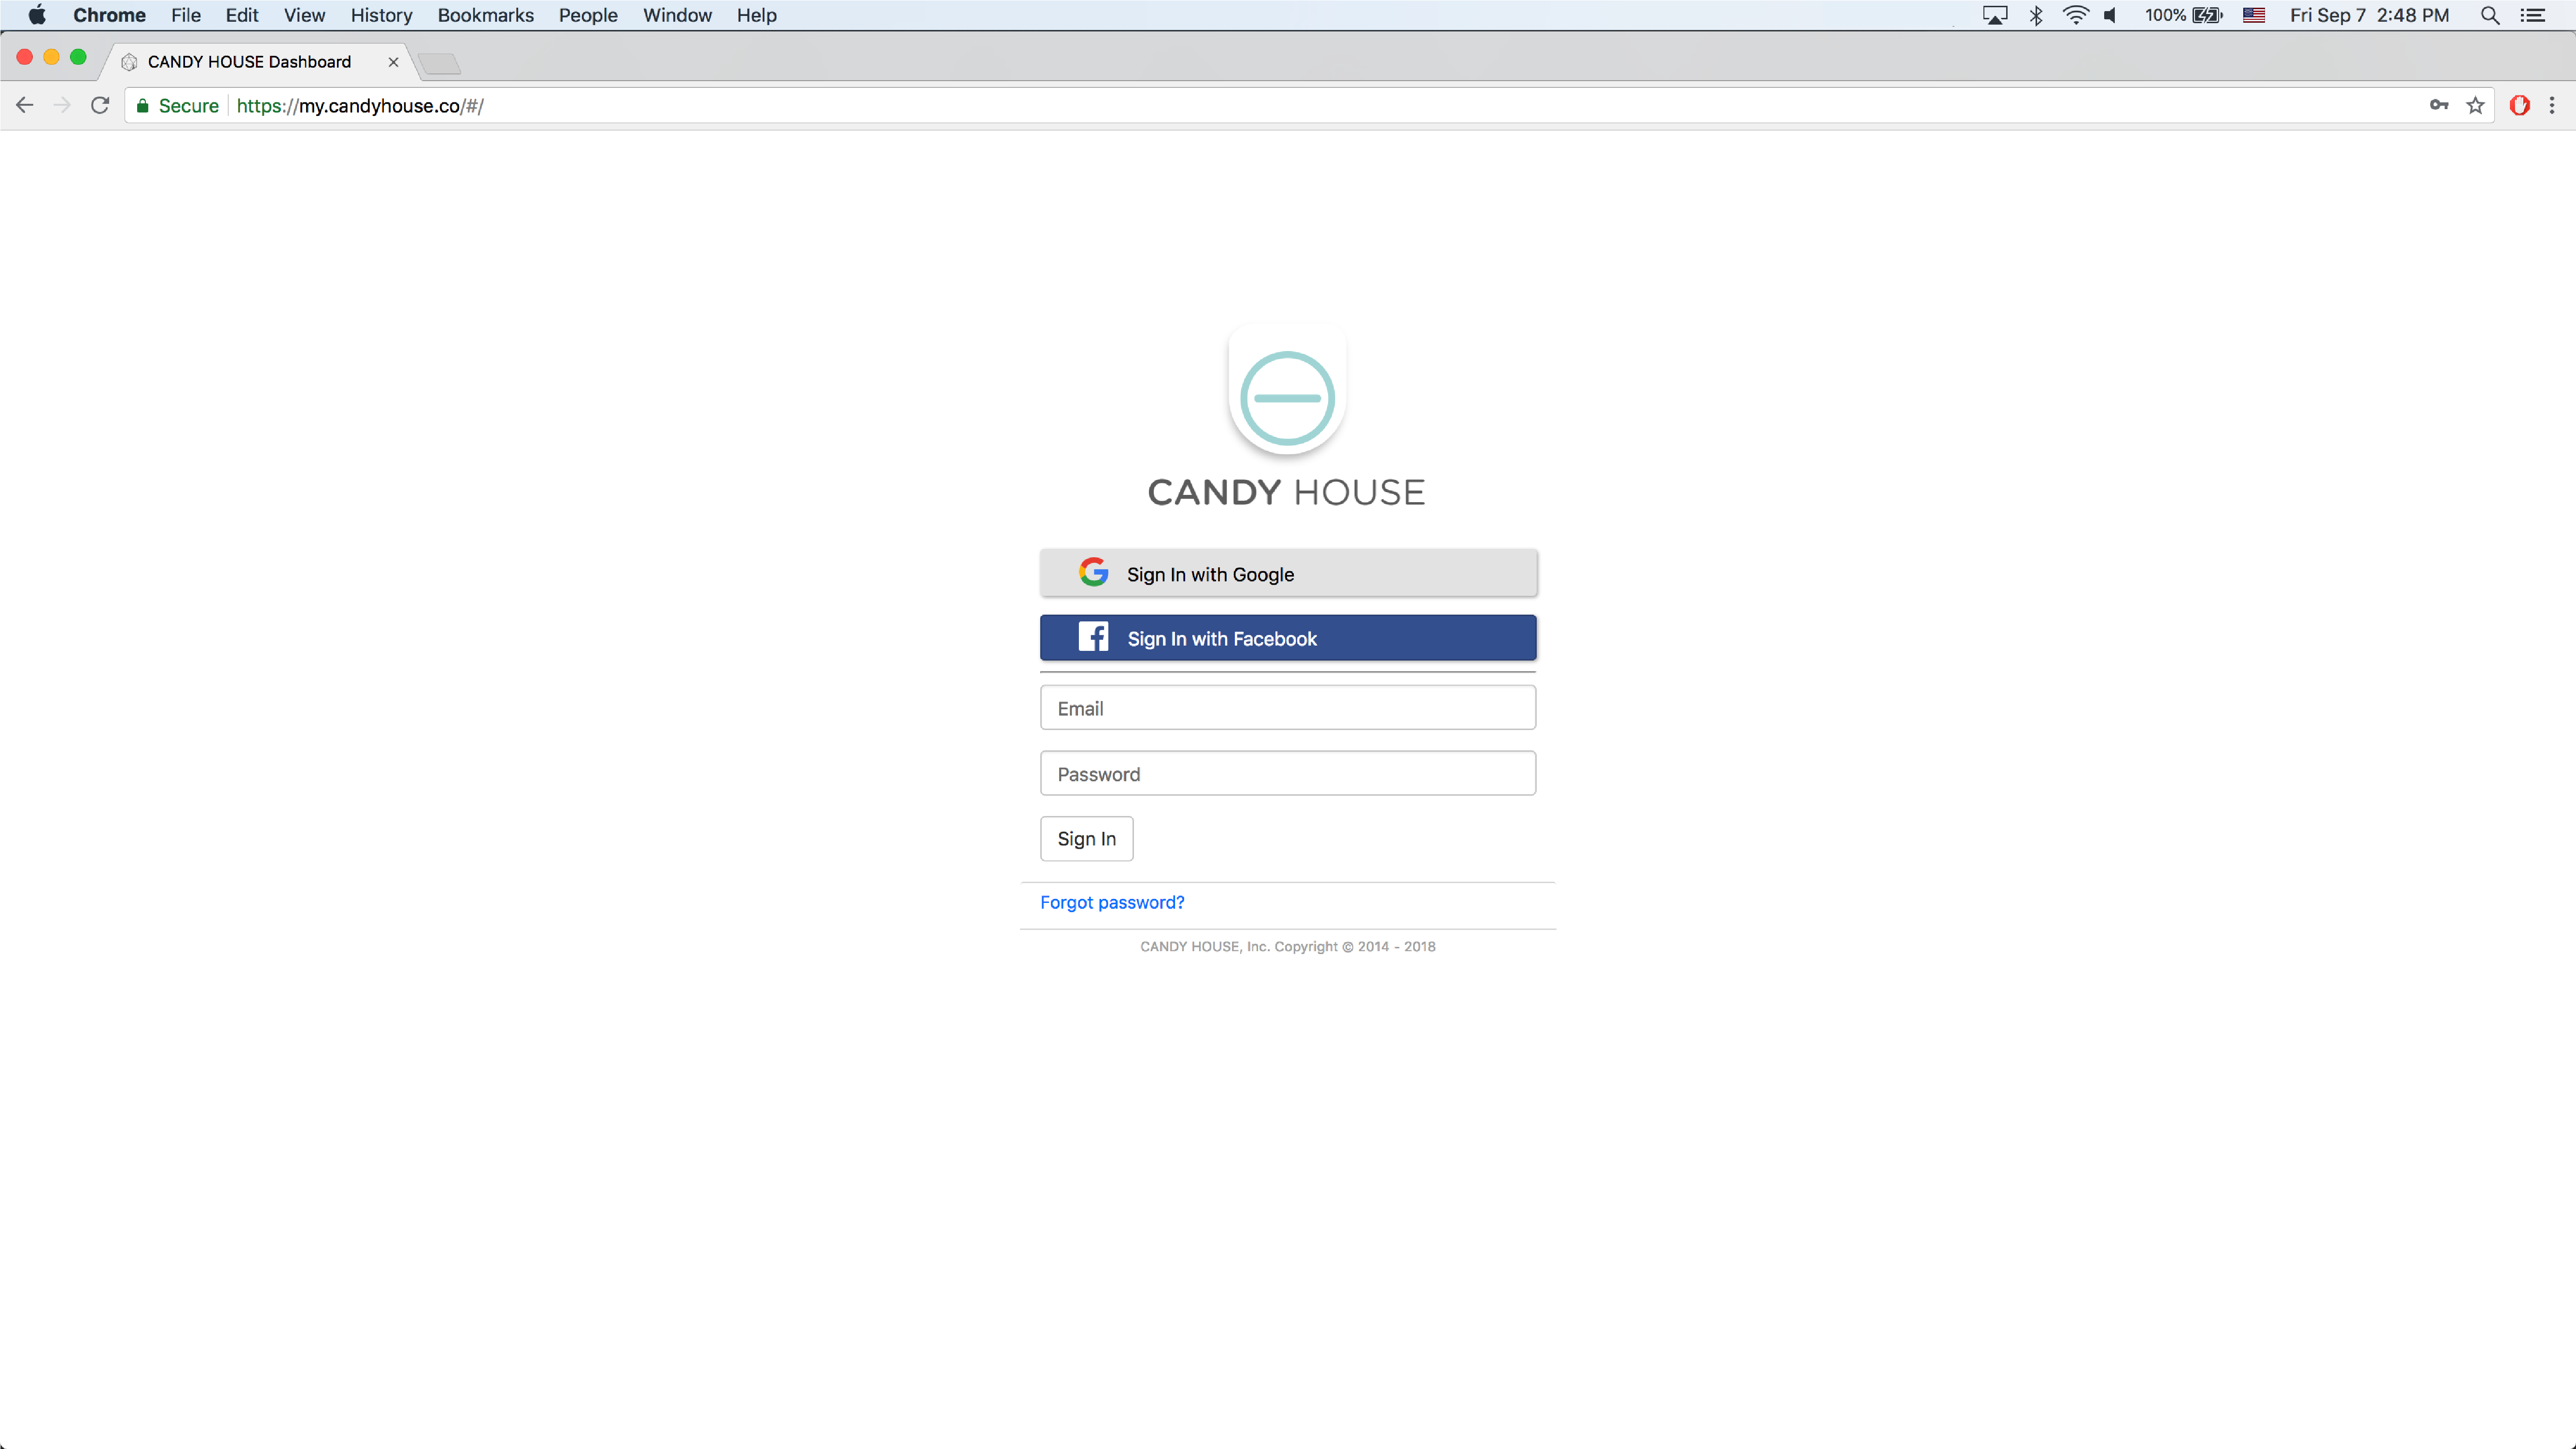 CANDY HOUSE Dashboard